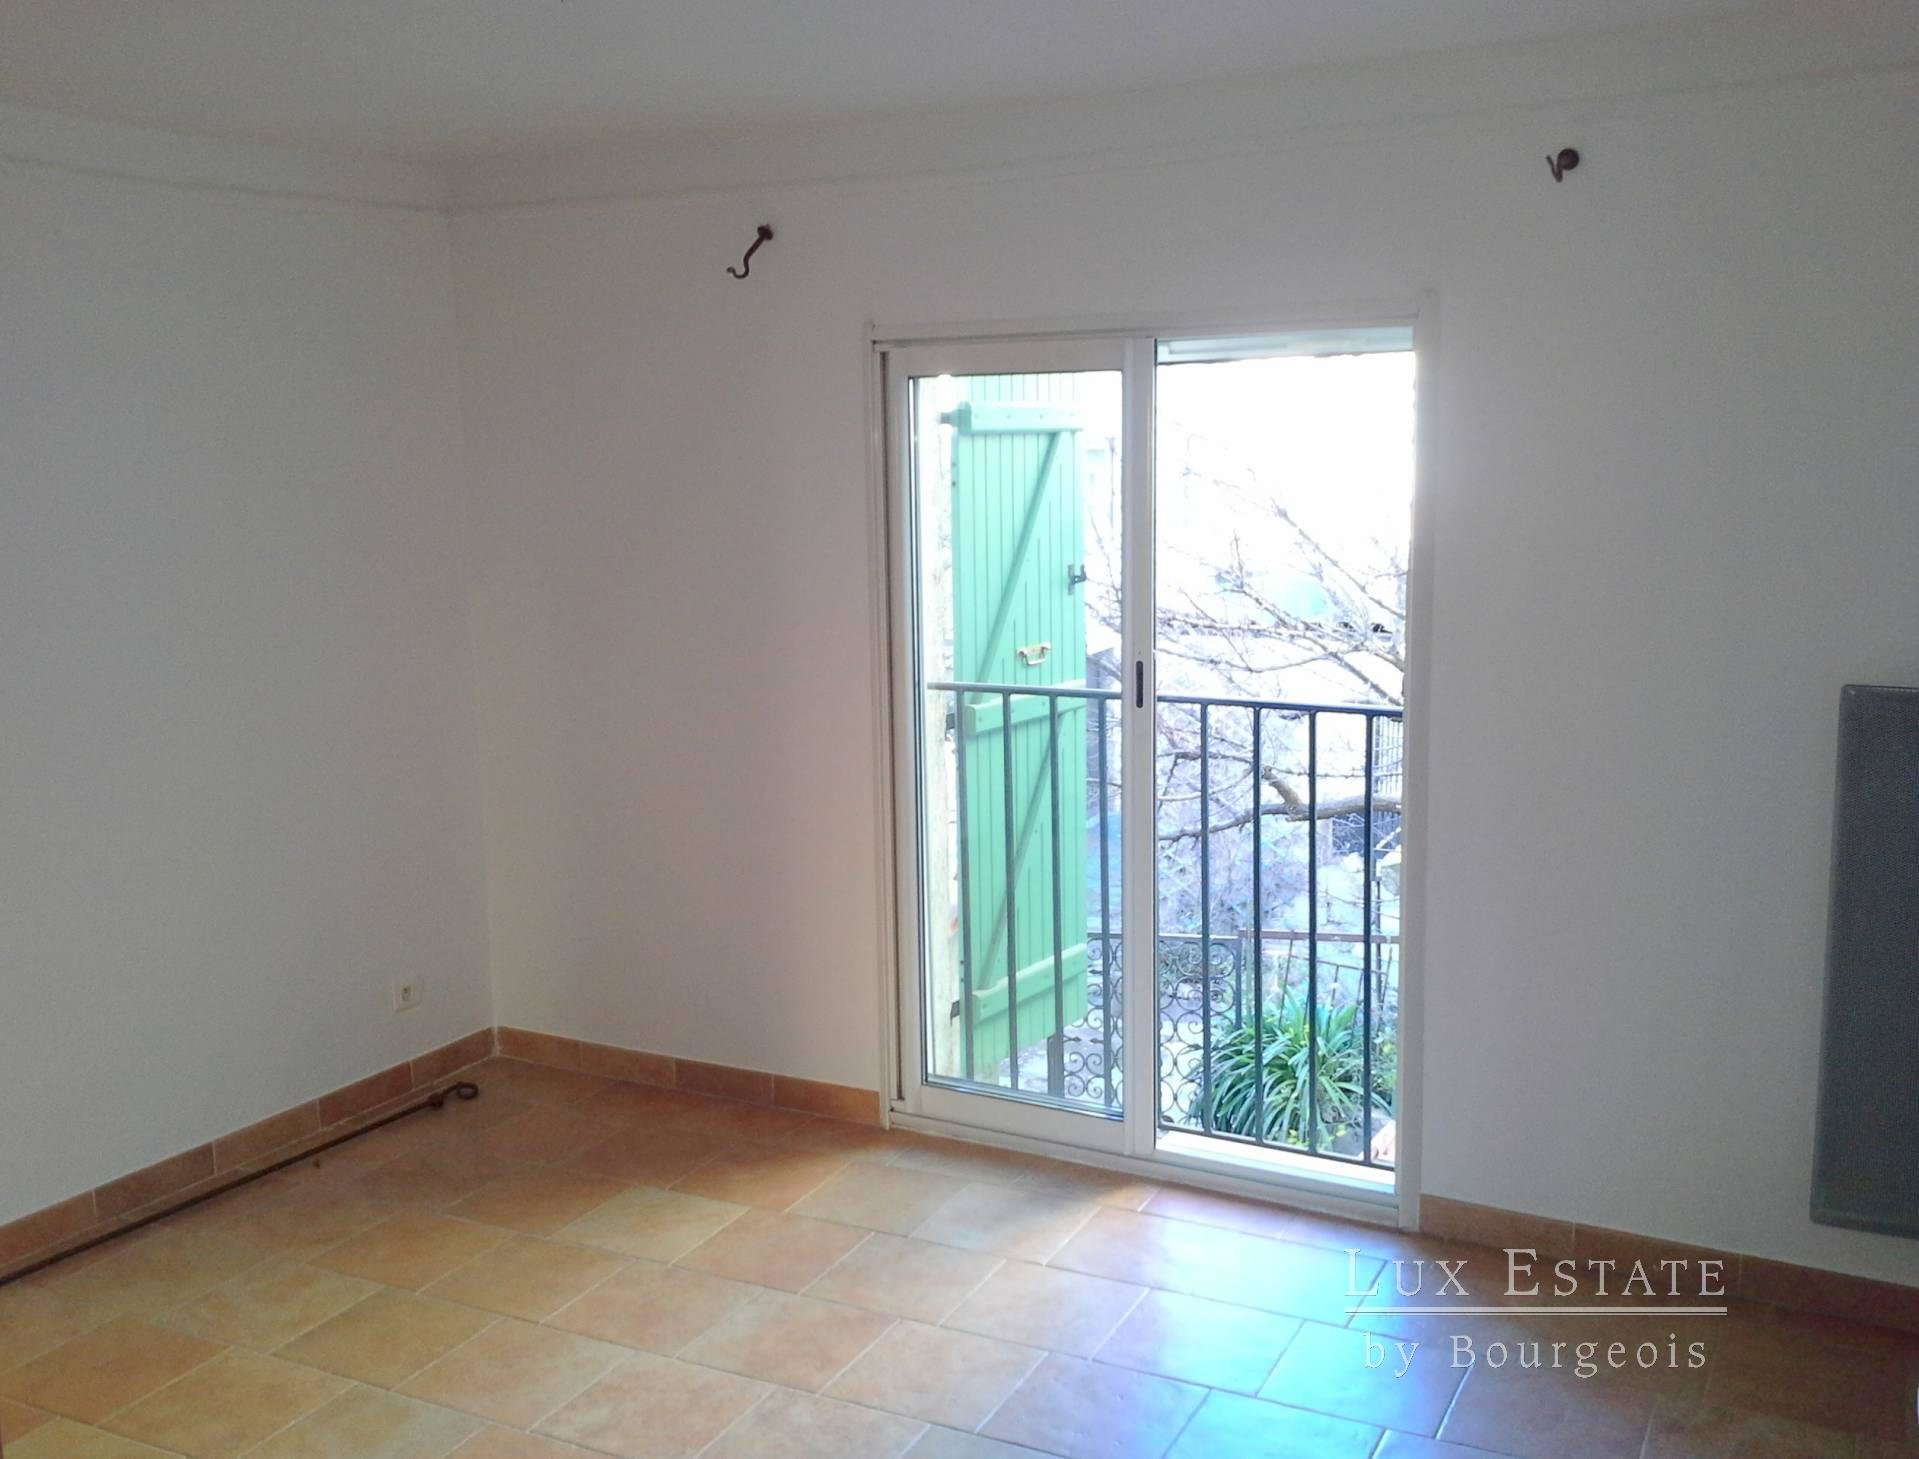 Location duplex Mougins